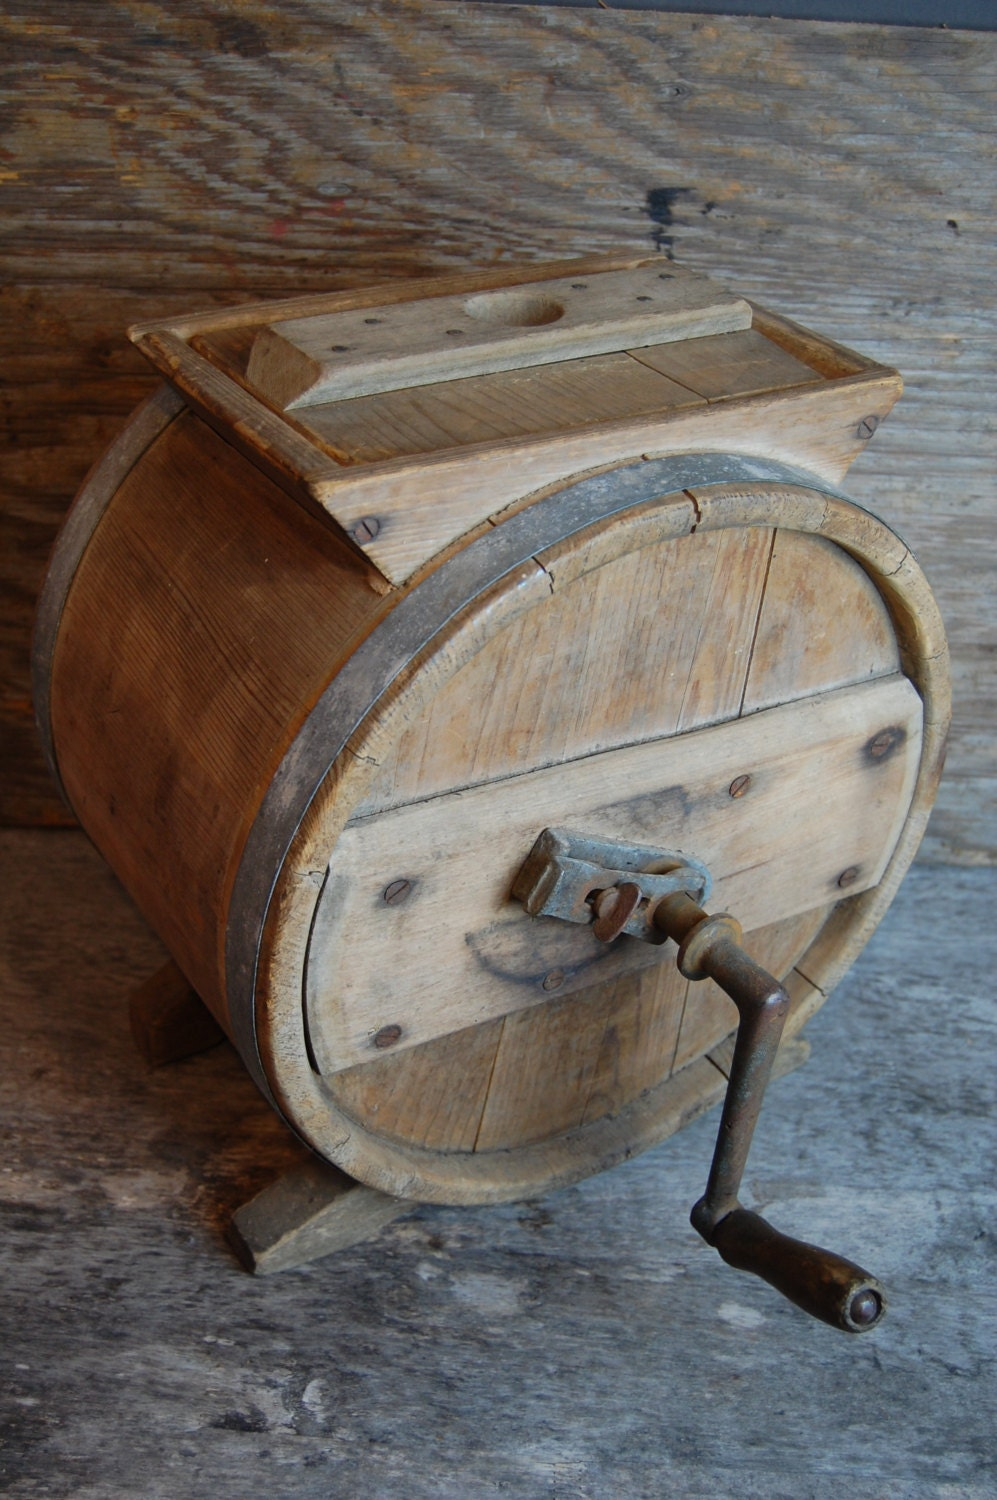 Sale Antique Wooden Tabletop Butter Churn With Crank Handle